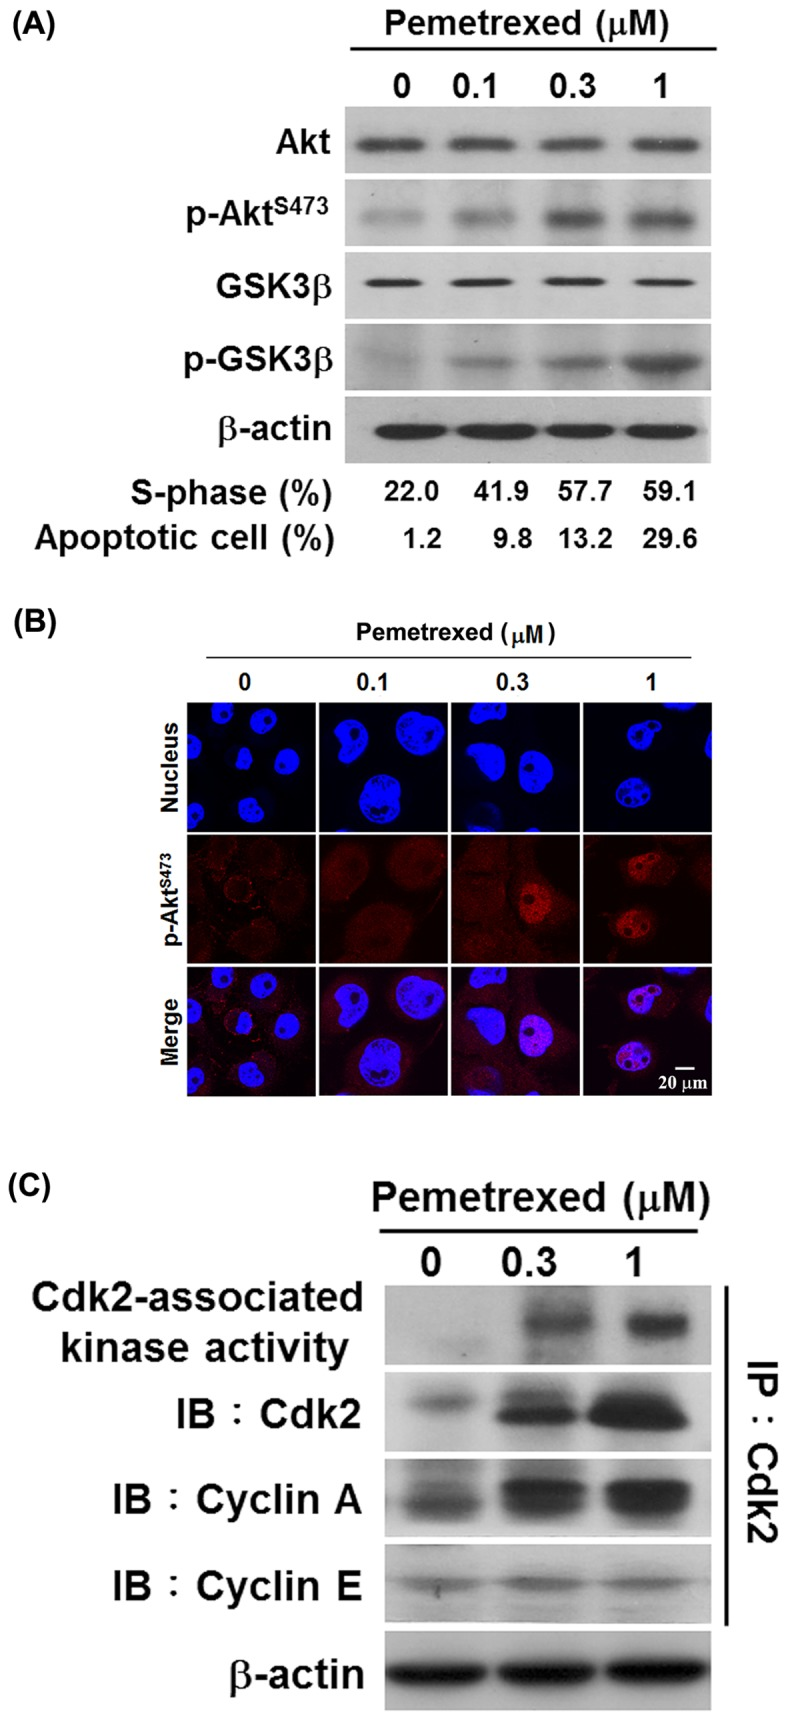 Activation of Akt and Cdk2 are occurred in pemetrexed-treated H1299 cells. (A) Pemetrexed stimulates Akt pathway activation. H1299 cells were treated with 0, 0.1, 0.3 and 1 µM pemetrexed for 48 h. After treatment, the levels of total Akt, phosphorylated Akt, total GSK3β, and phosphorylated GSK3β were examined by Western blot analysis. β-Actin was used as an internal loading control. The proportion of S-phase population and apoptotic cells were determined as described in the Materials and Methods section. (B) Nuclear accumulation of Akt occurred in pemetrexed-treated H1299 cells. Cells were treated with 0, 0.1, 0.3, and 1 µM pemetrexed for 48 h, the subcellular distribution of p-Akt S473 was detected by confocal microscopy after immunostaining with anti-phospho-Akt S473 . Hoechst 33342 was used to counterstain nuclei. (C) Pemetrexed activated Cdk2/Cyclin A-associated kinase in H1299cells. H1299 cells were treated with 0, 0.3, and 1 µM pemetrexed for 24 h, and then protein lysates were isolated. The Cdk2 kinase activity and the levels of Cdk2, Cyclin A and Cyclin E were determined.